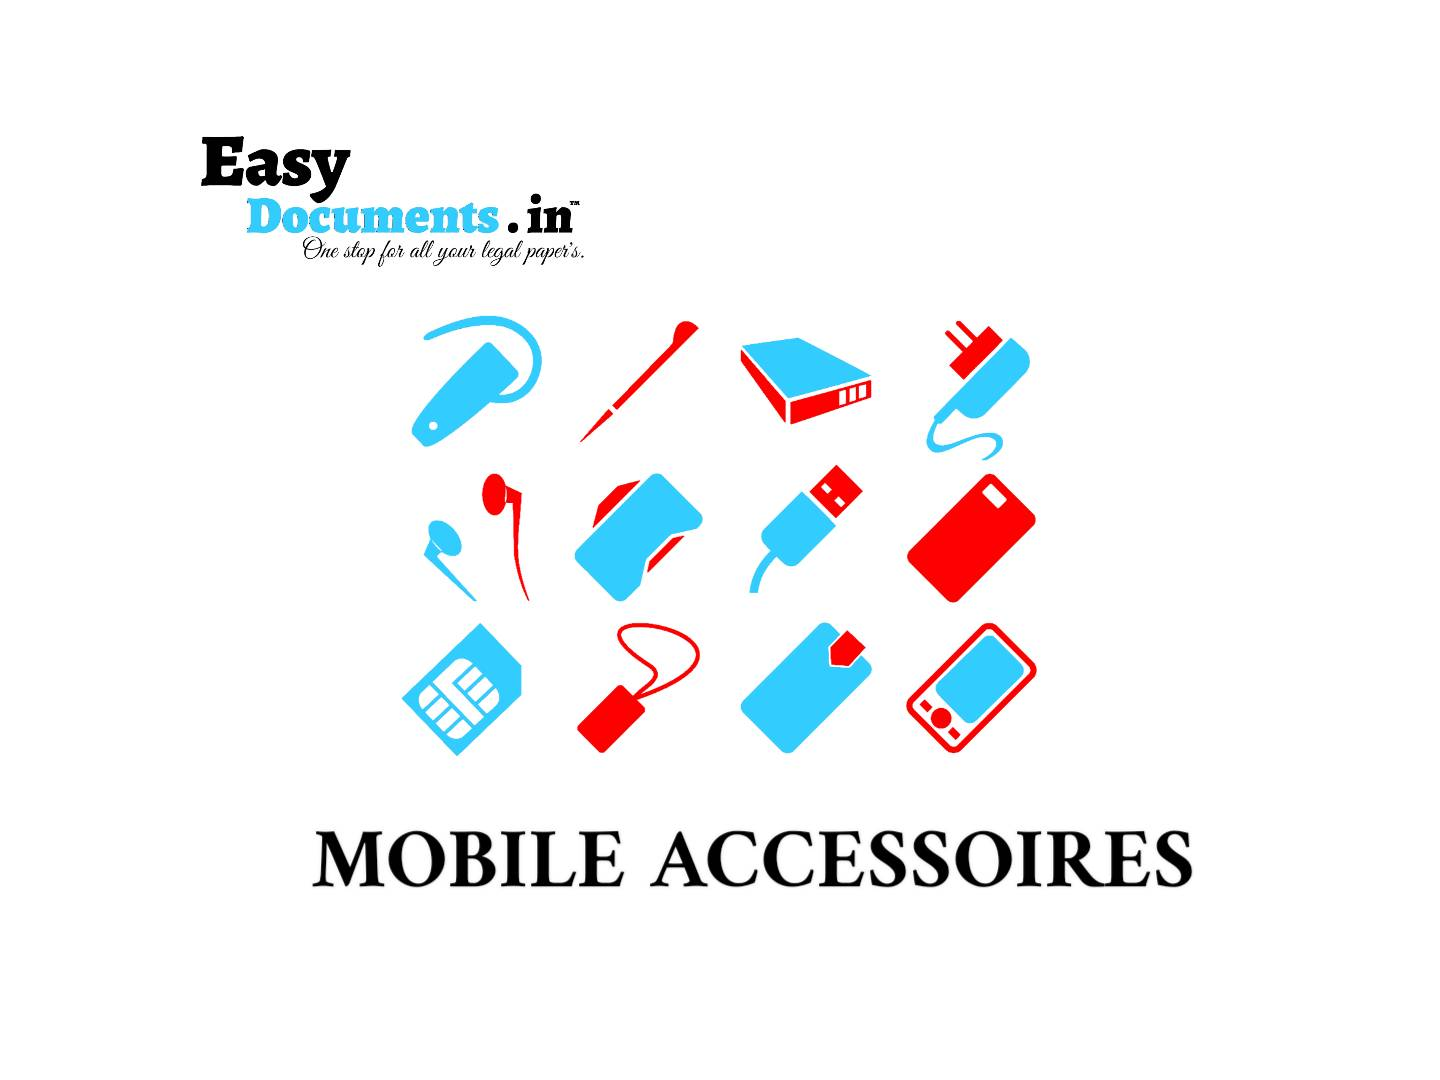 HOW TO START MOBILE ACCESSORIES BUSINESS